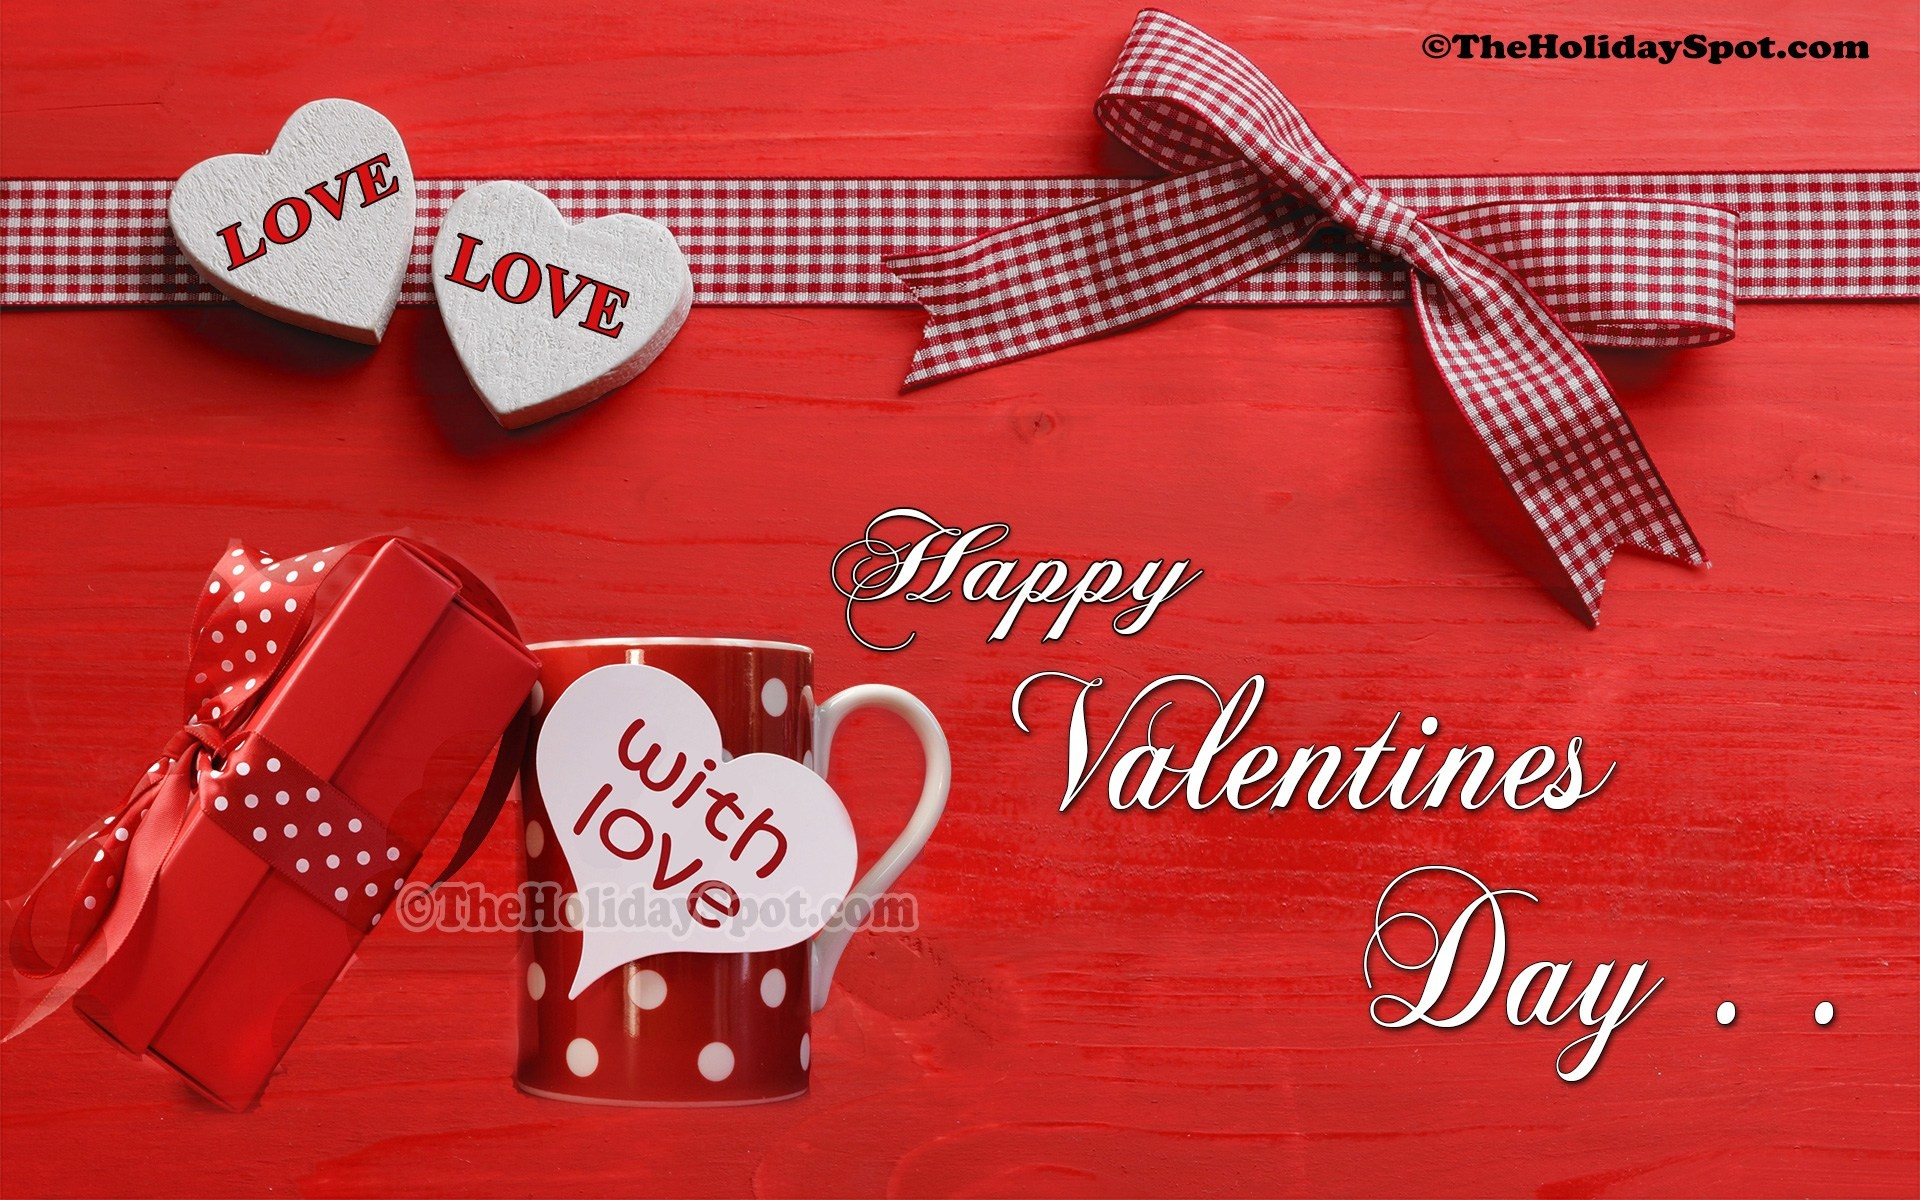 77 Valentines Day Wallpapers. St Valentines Screensavers Nfslovebirds